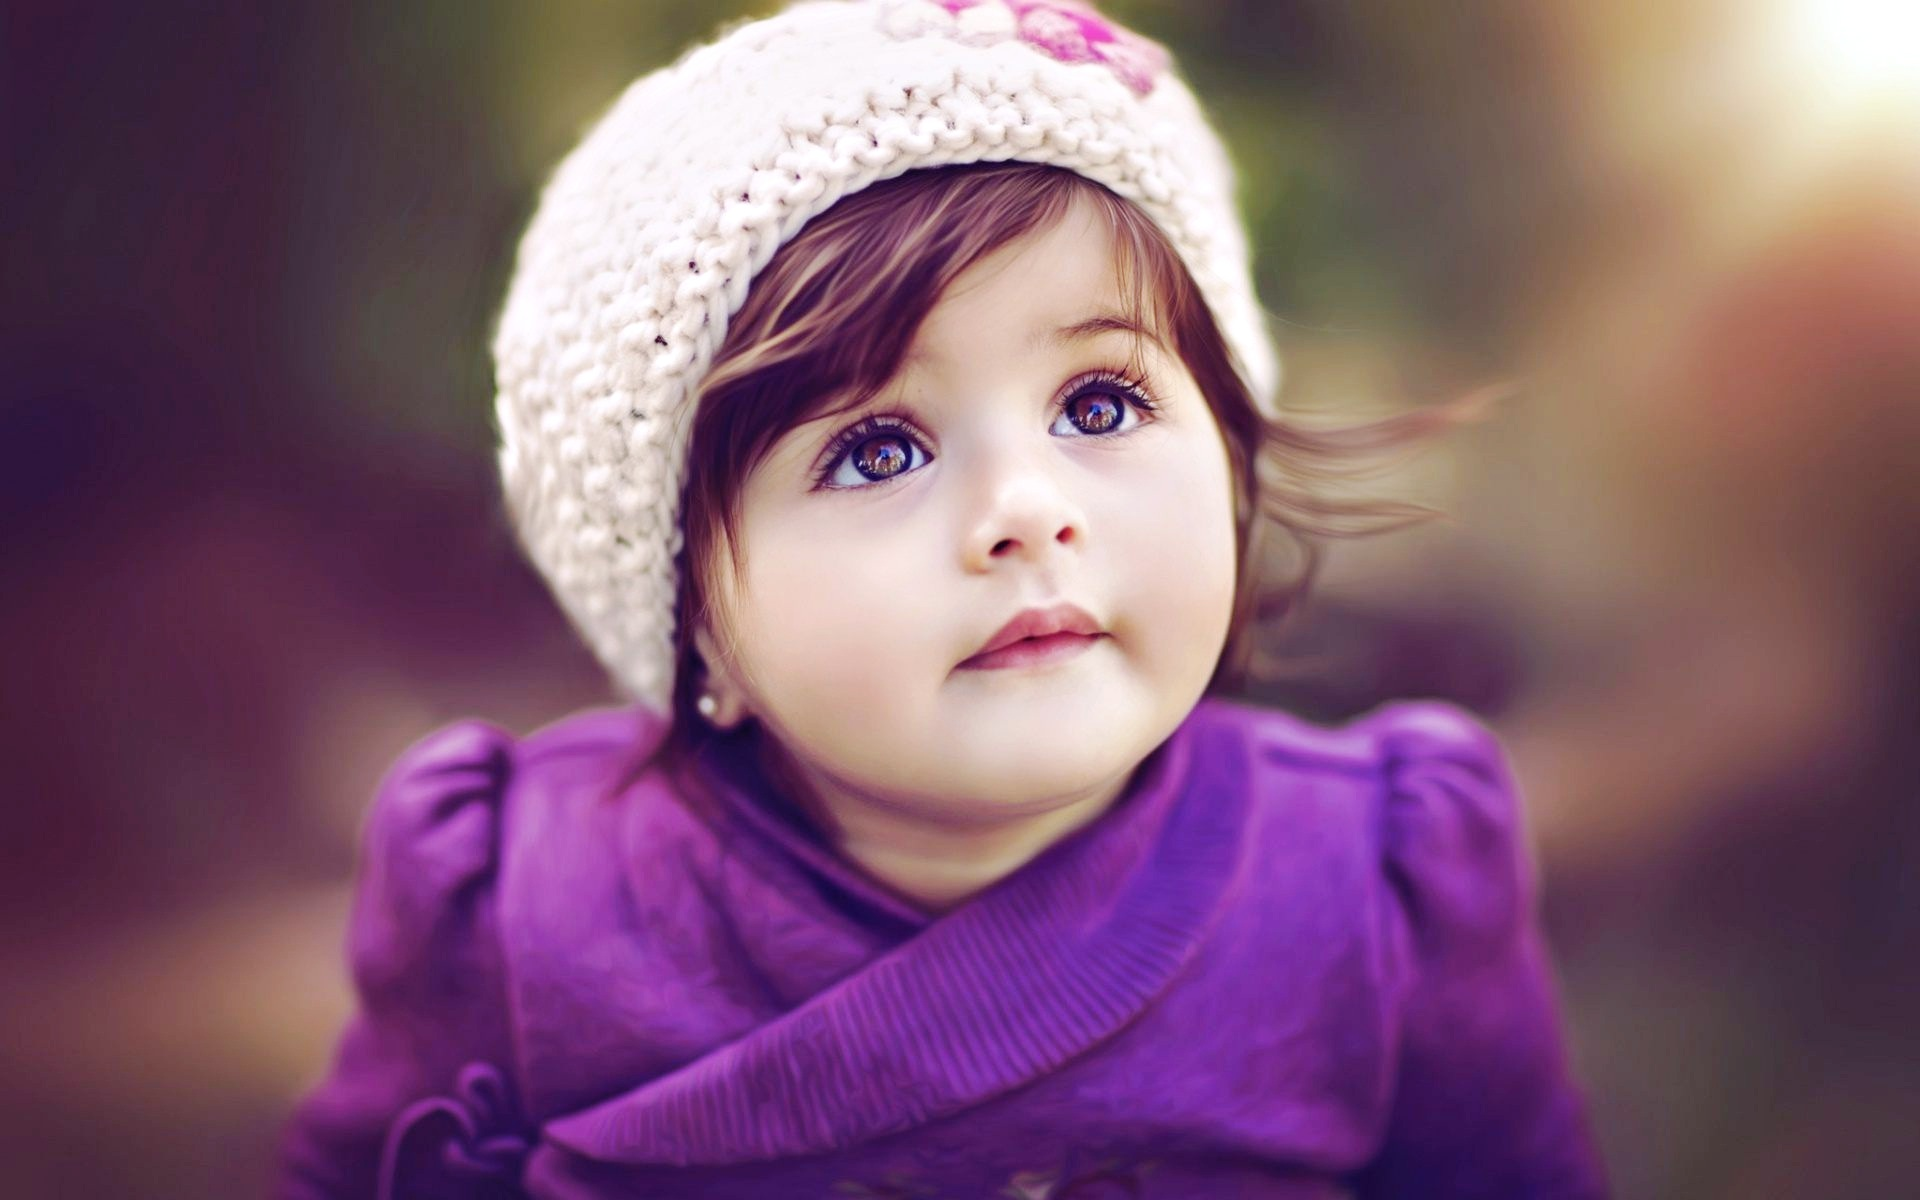 Adorable cute little girl superb wallpapers - New hd wallpaperNew hd ...